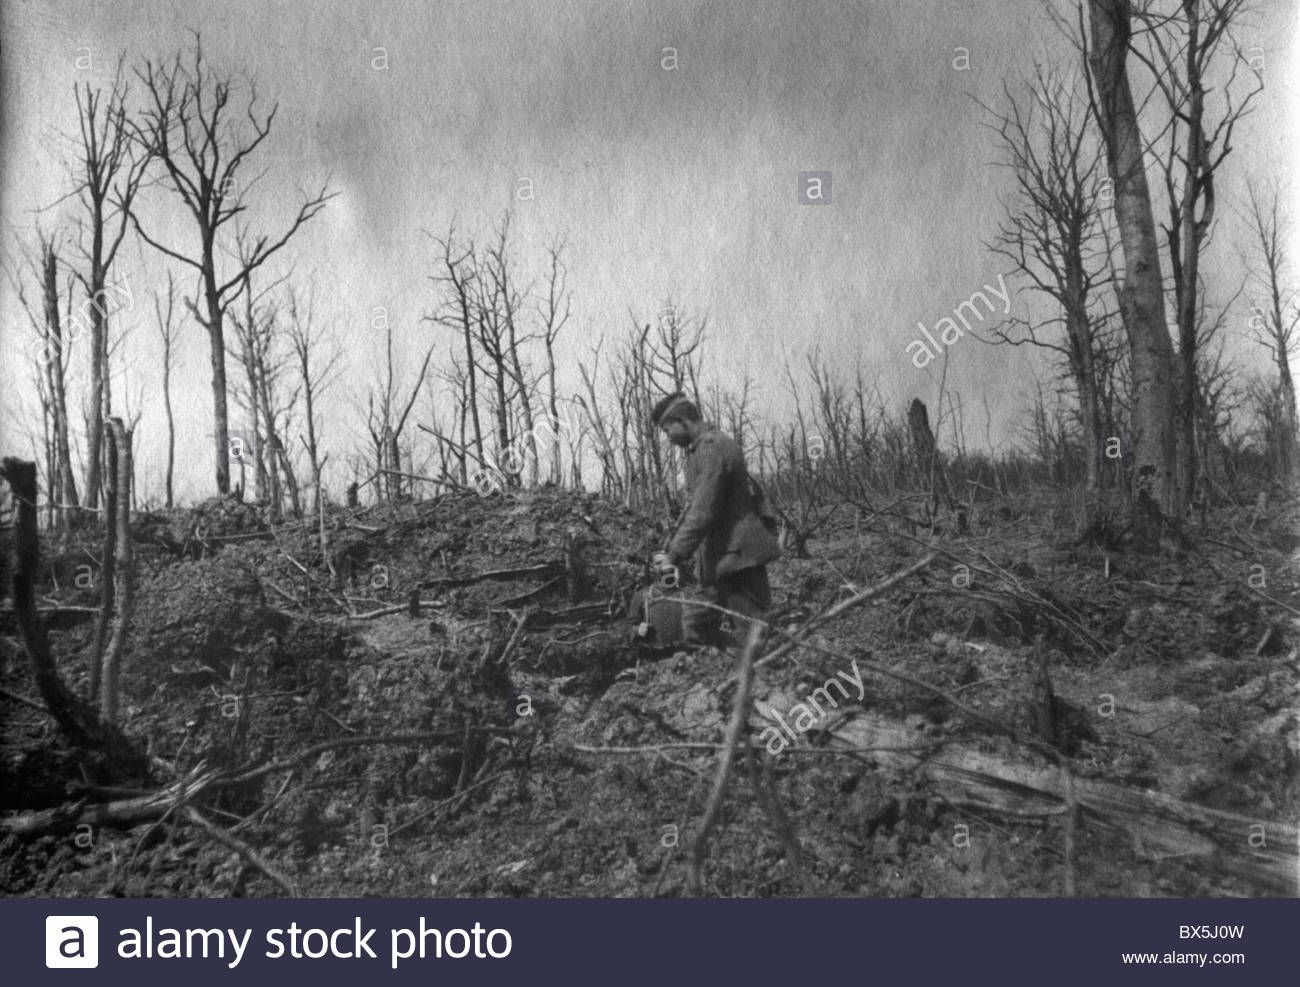 german soldiers in a destroyed landscape history wwi